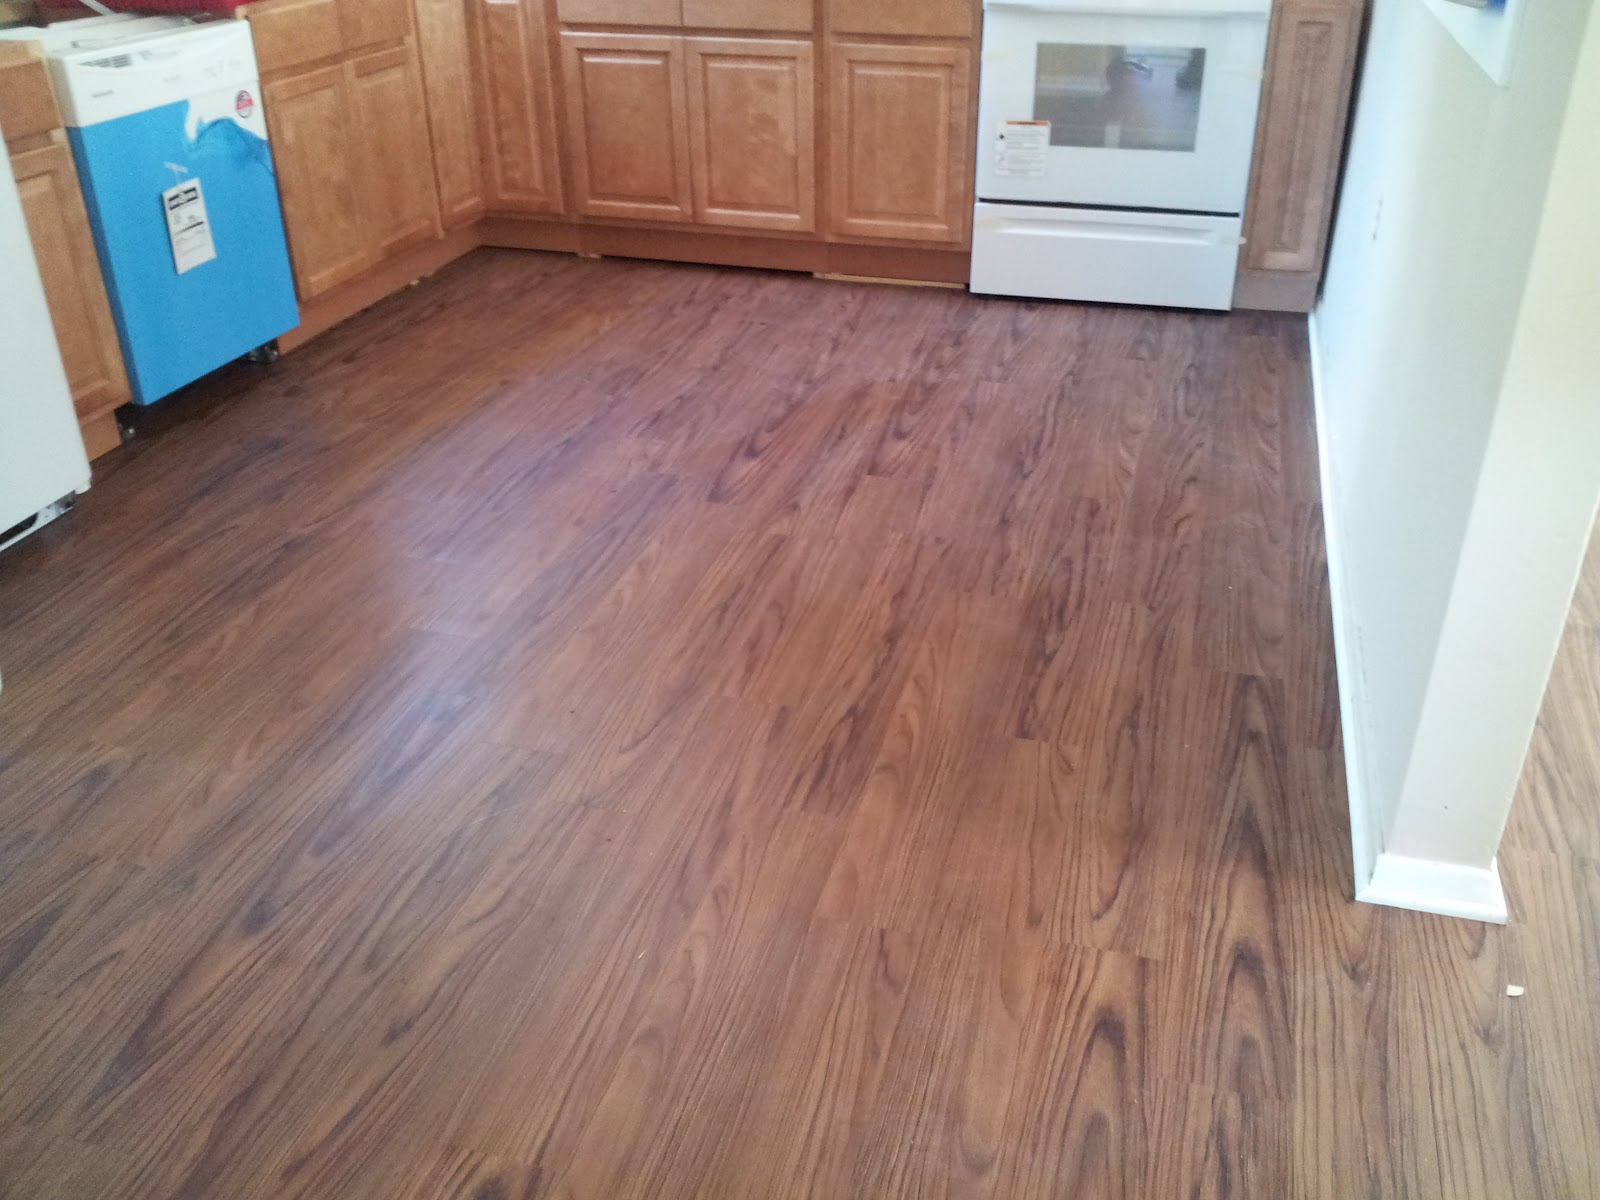 Wood Look Vinyl Flooring : Floor installation photos wood looking vinyl in